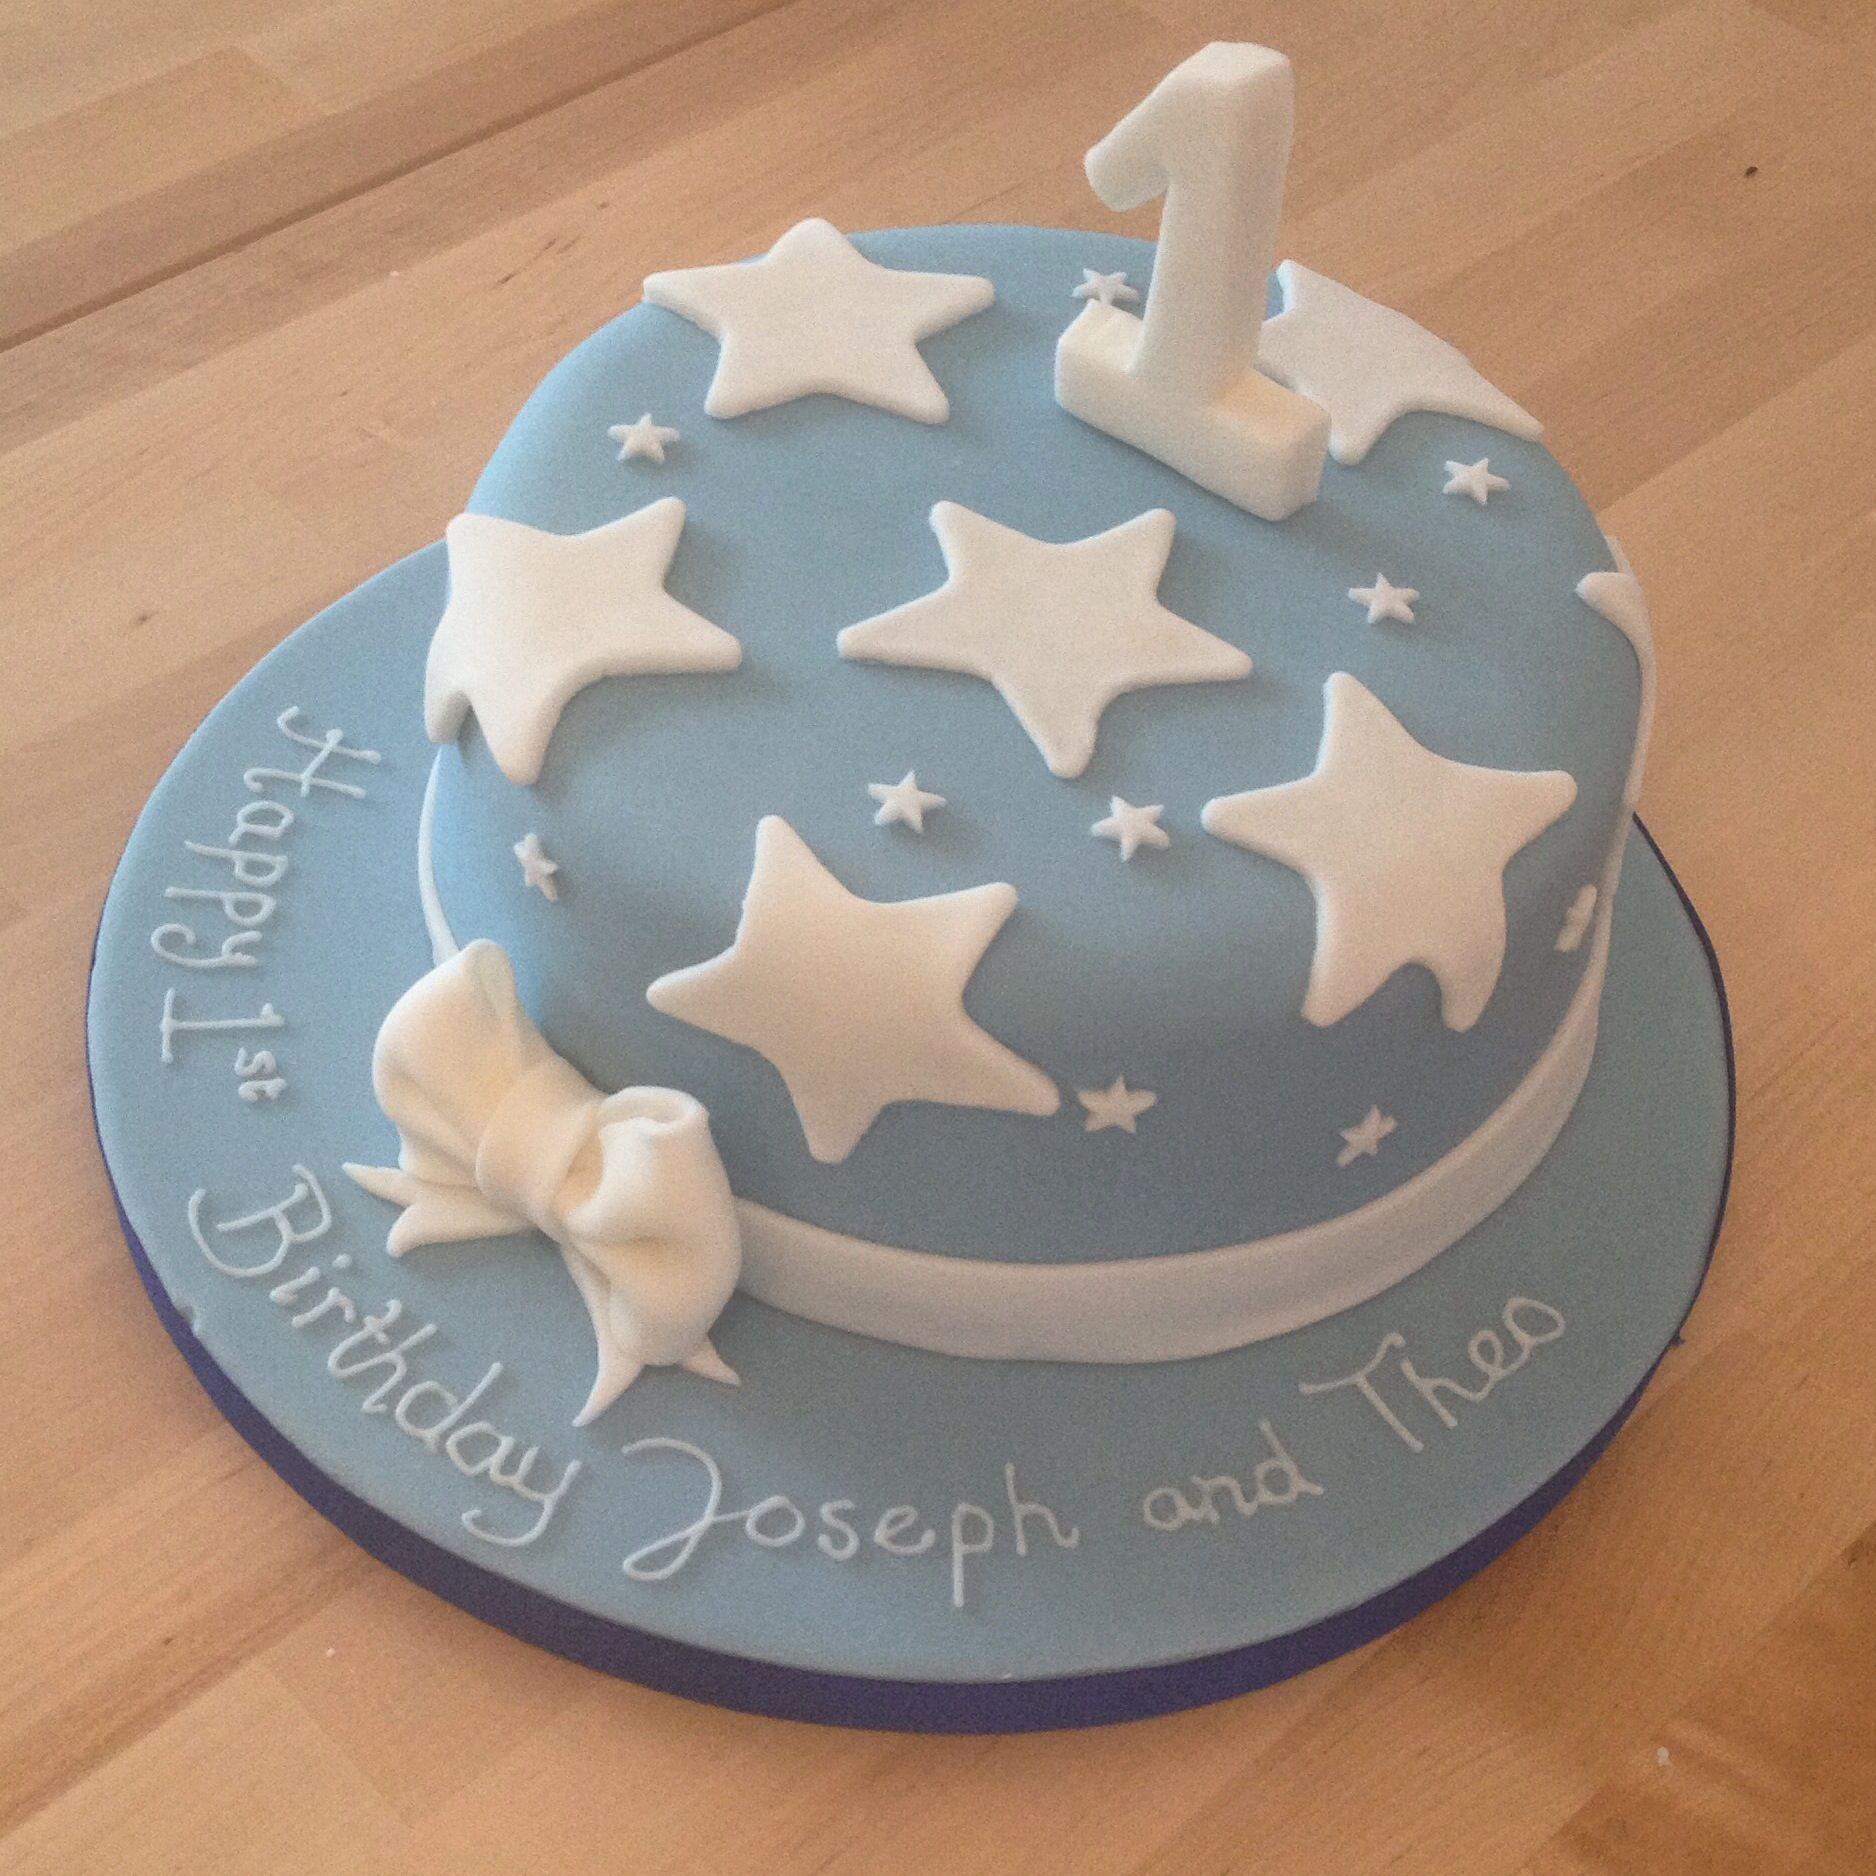 1st Birthday Cake For A Boy Baby Blue With White Stars Icing Ribbon And Model Number 1 Piped Writing Madeira Sponge 8 Round